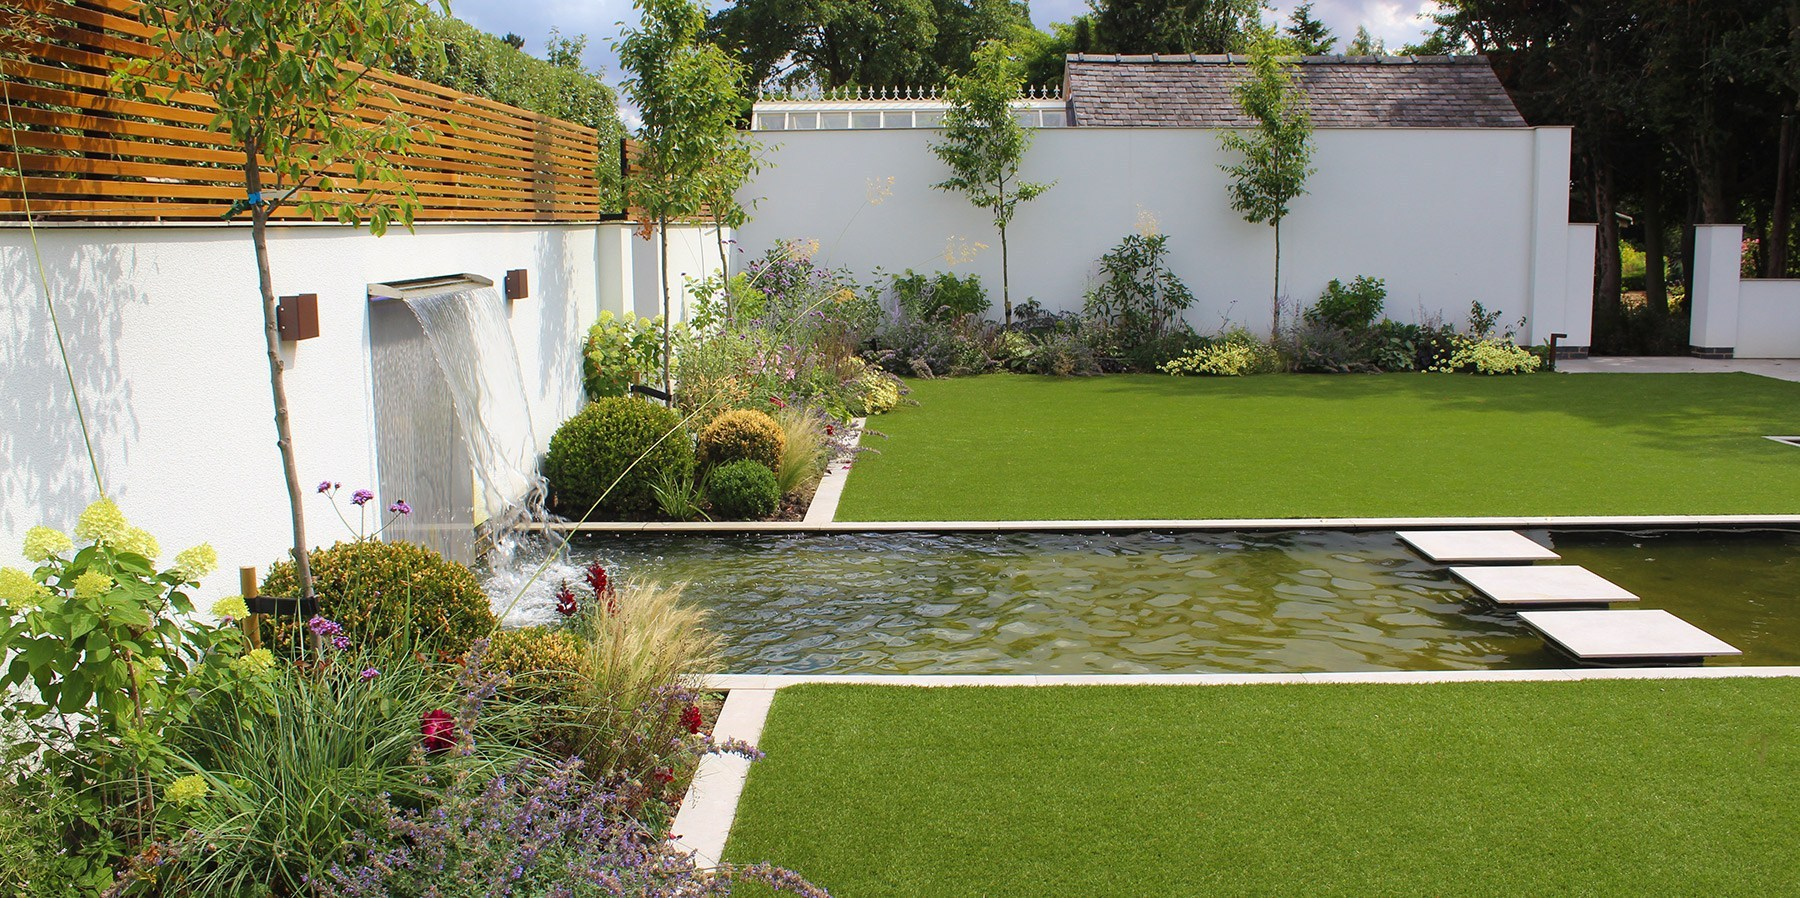 A swimming pool garden to compliment a stylish modern extension